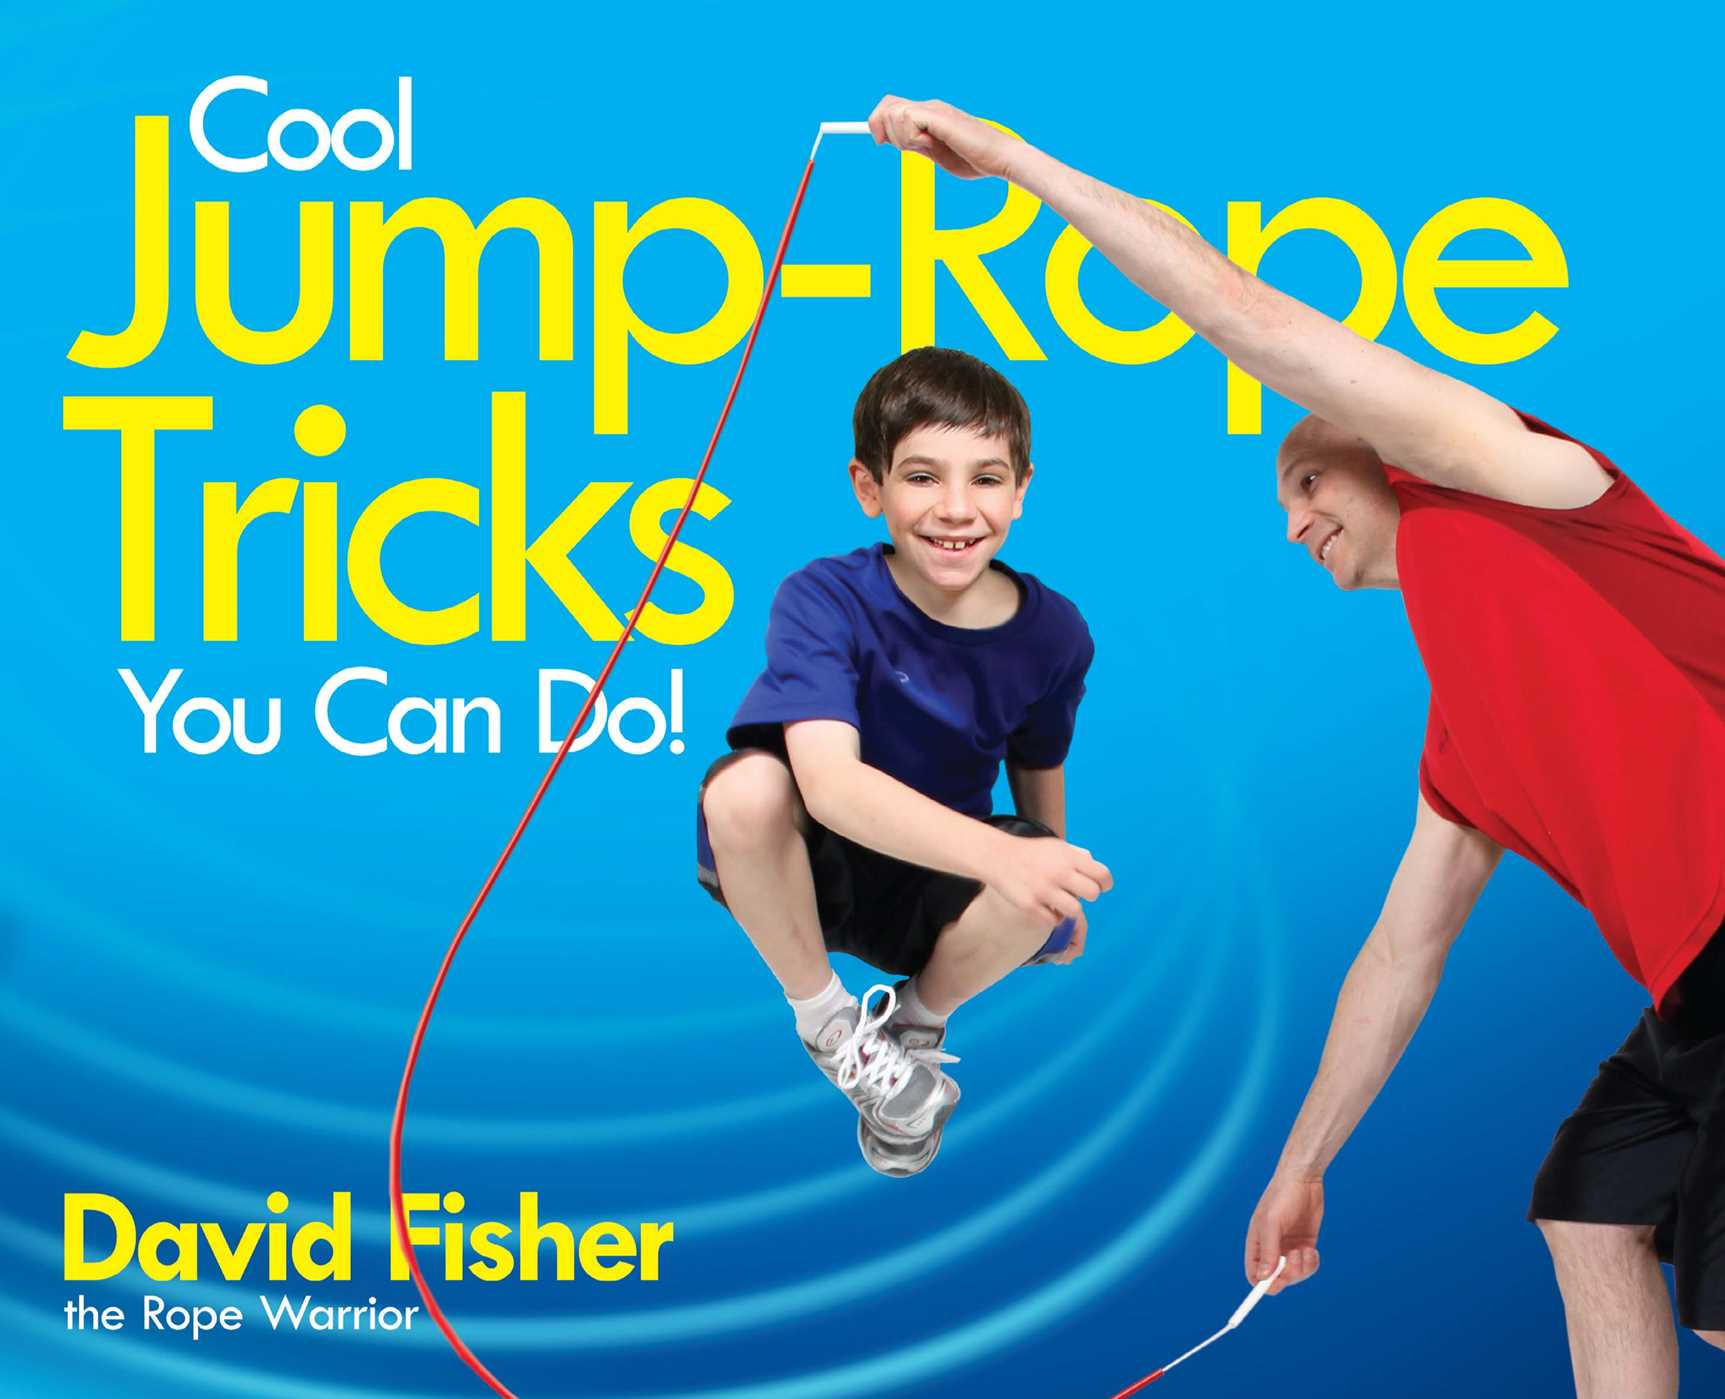 Cool-jump-rope-tricks-you-can-do!-9781481412315_hr